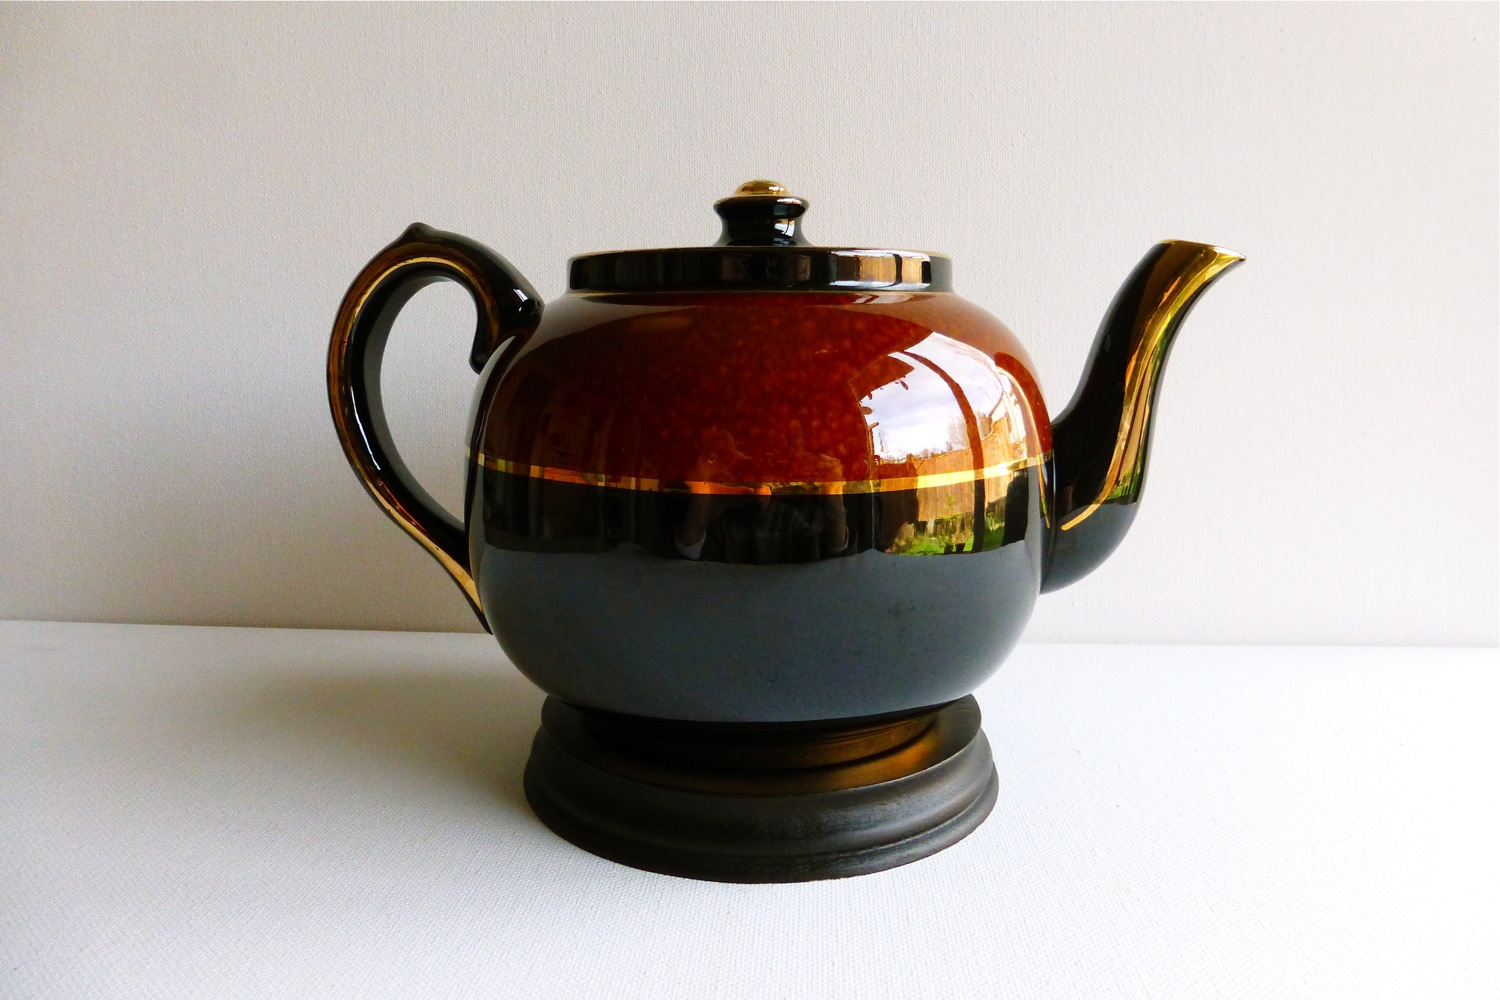 Sudlow's teapot, English two-toned teapot, English Sudlow's teapot, Vintage Tea Treasures on Etsy, Etsy Vintage Tea Treasures, English tea ware, vintage Sudlow's teapot, vintage tea party, vintage English tea party, Sudlow's brown teapot, Sudlow's black teapot, Sudlow's brown and black teapot, Sudlow's earthenware teapot, English teapot, Burslem teapot, brown black teapot